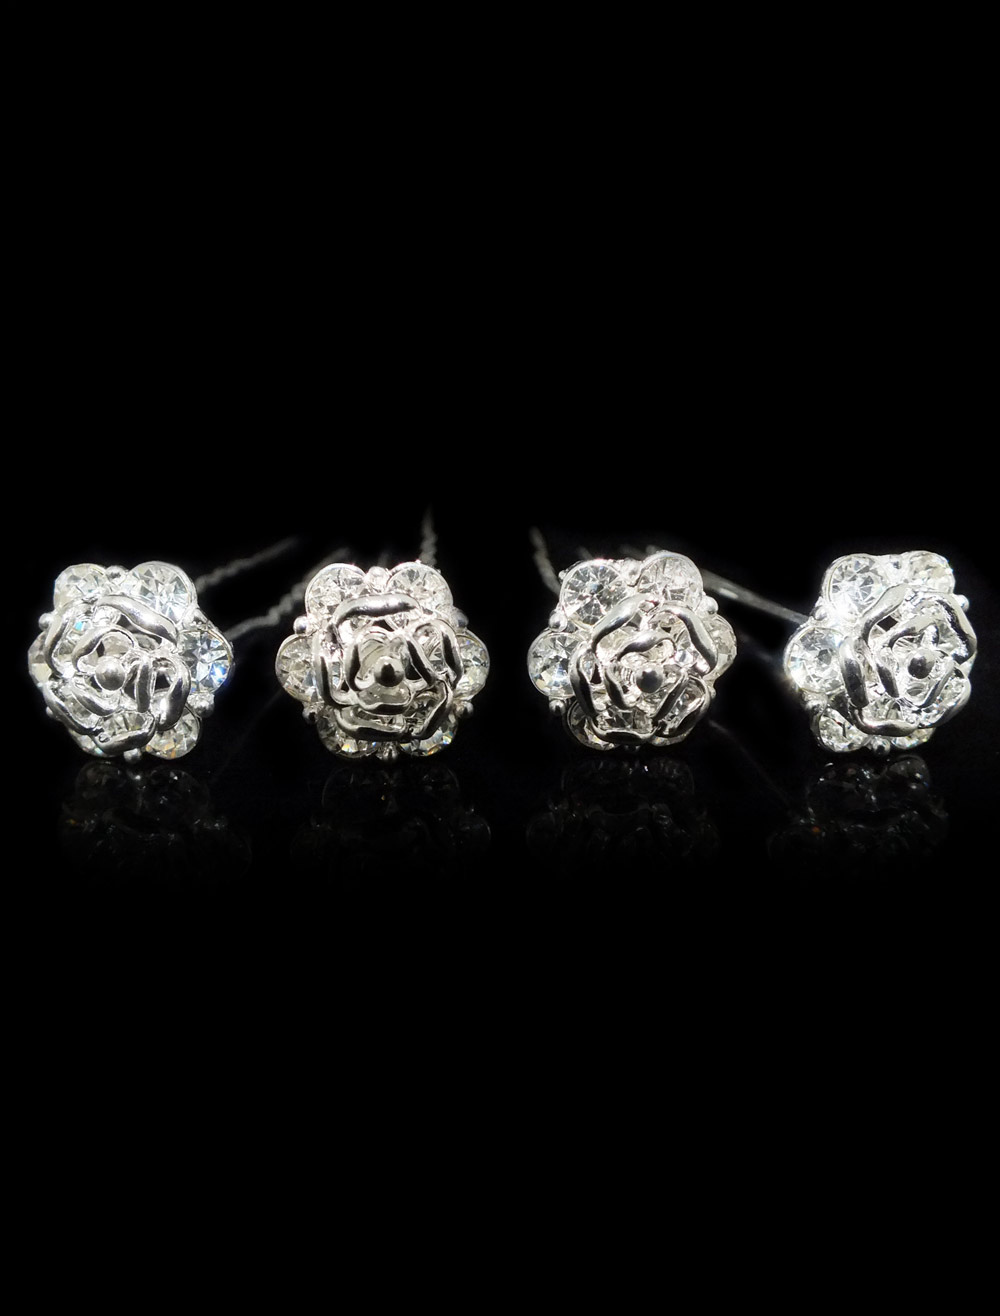 wedding hair pins  Rhinestone flower Bridal hair accessories 4 pieces